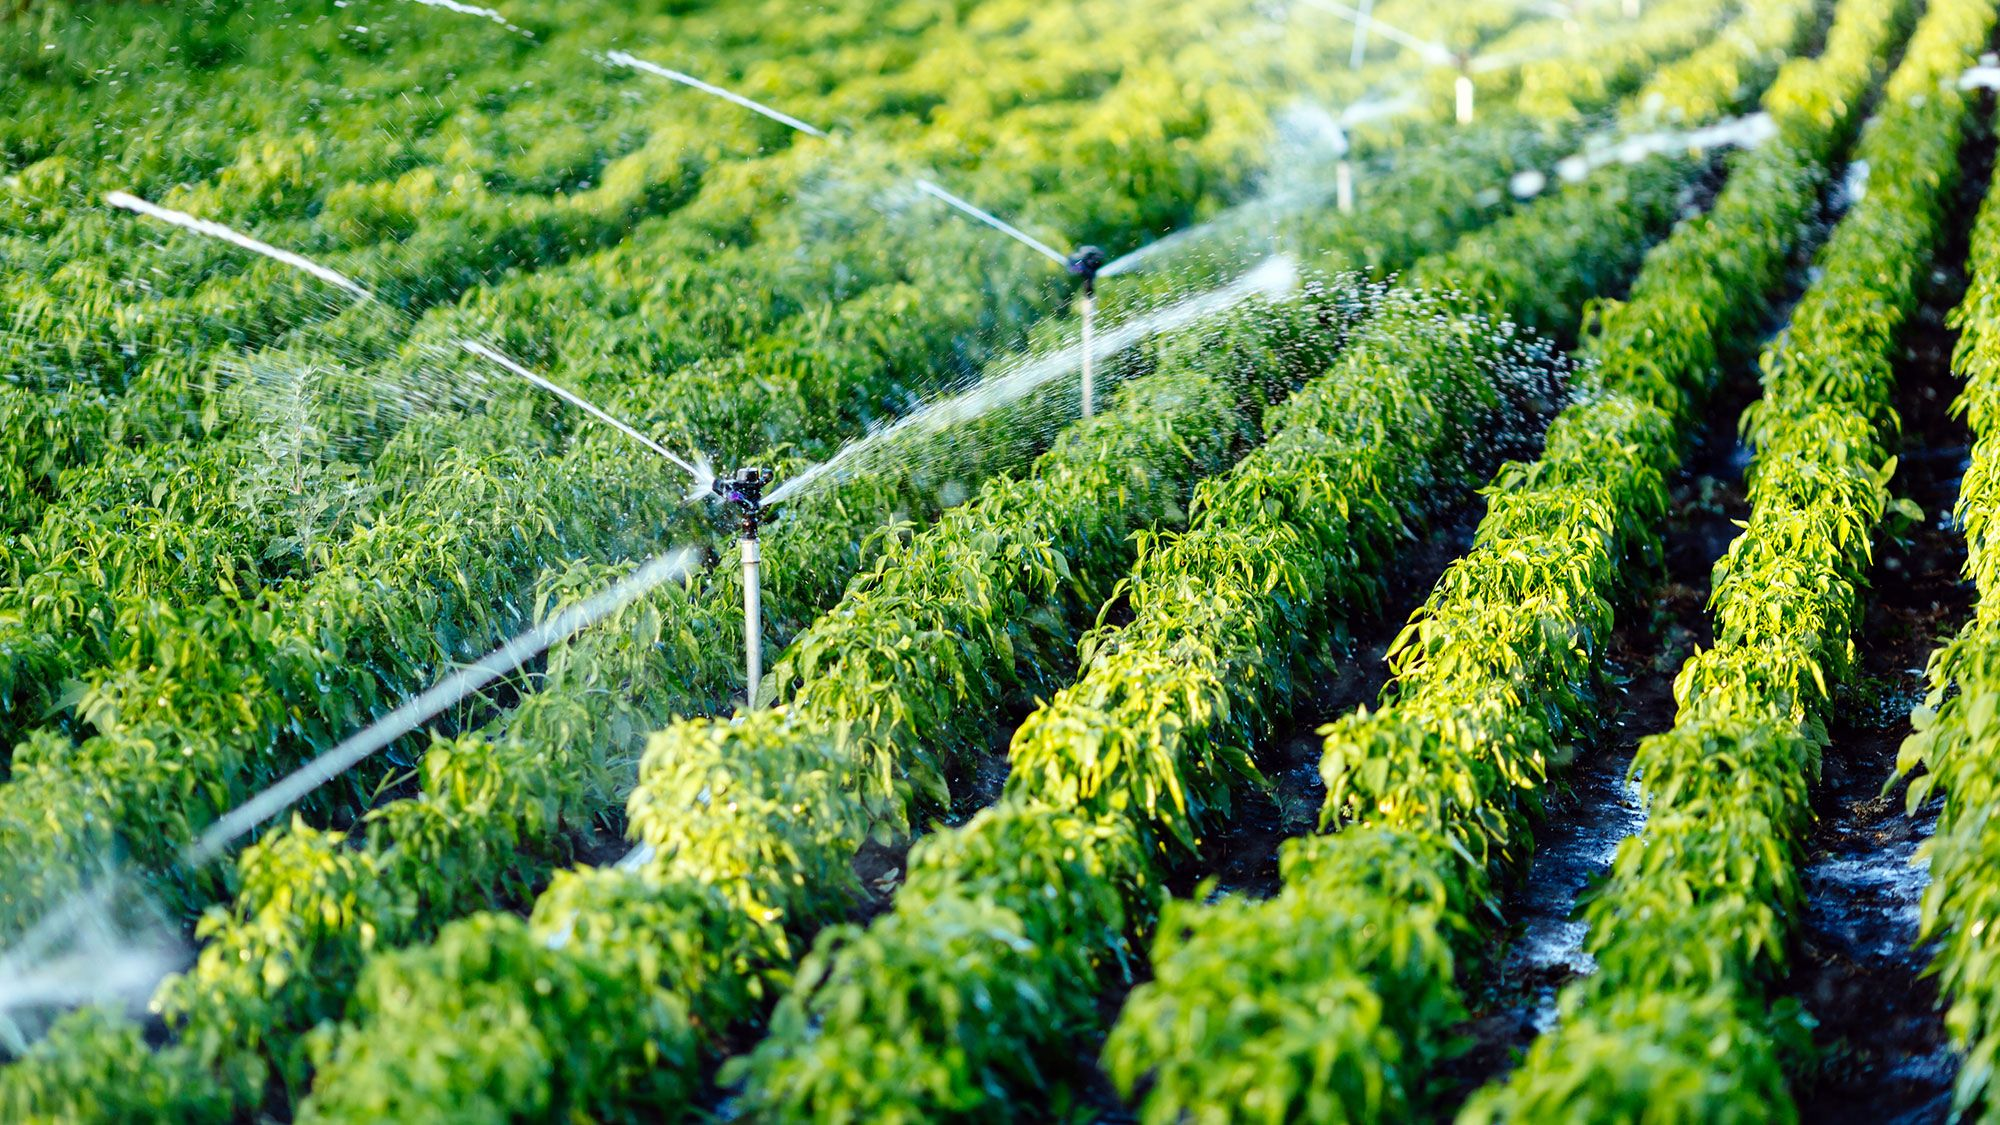 Watering agricultural plants